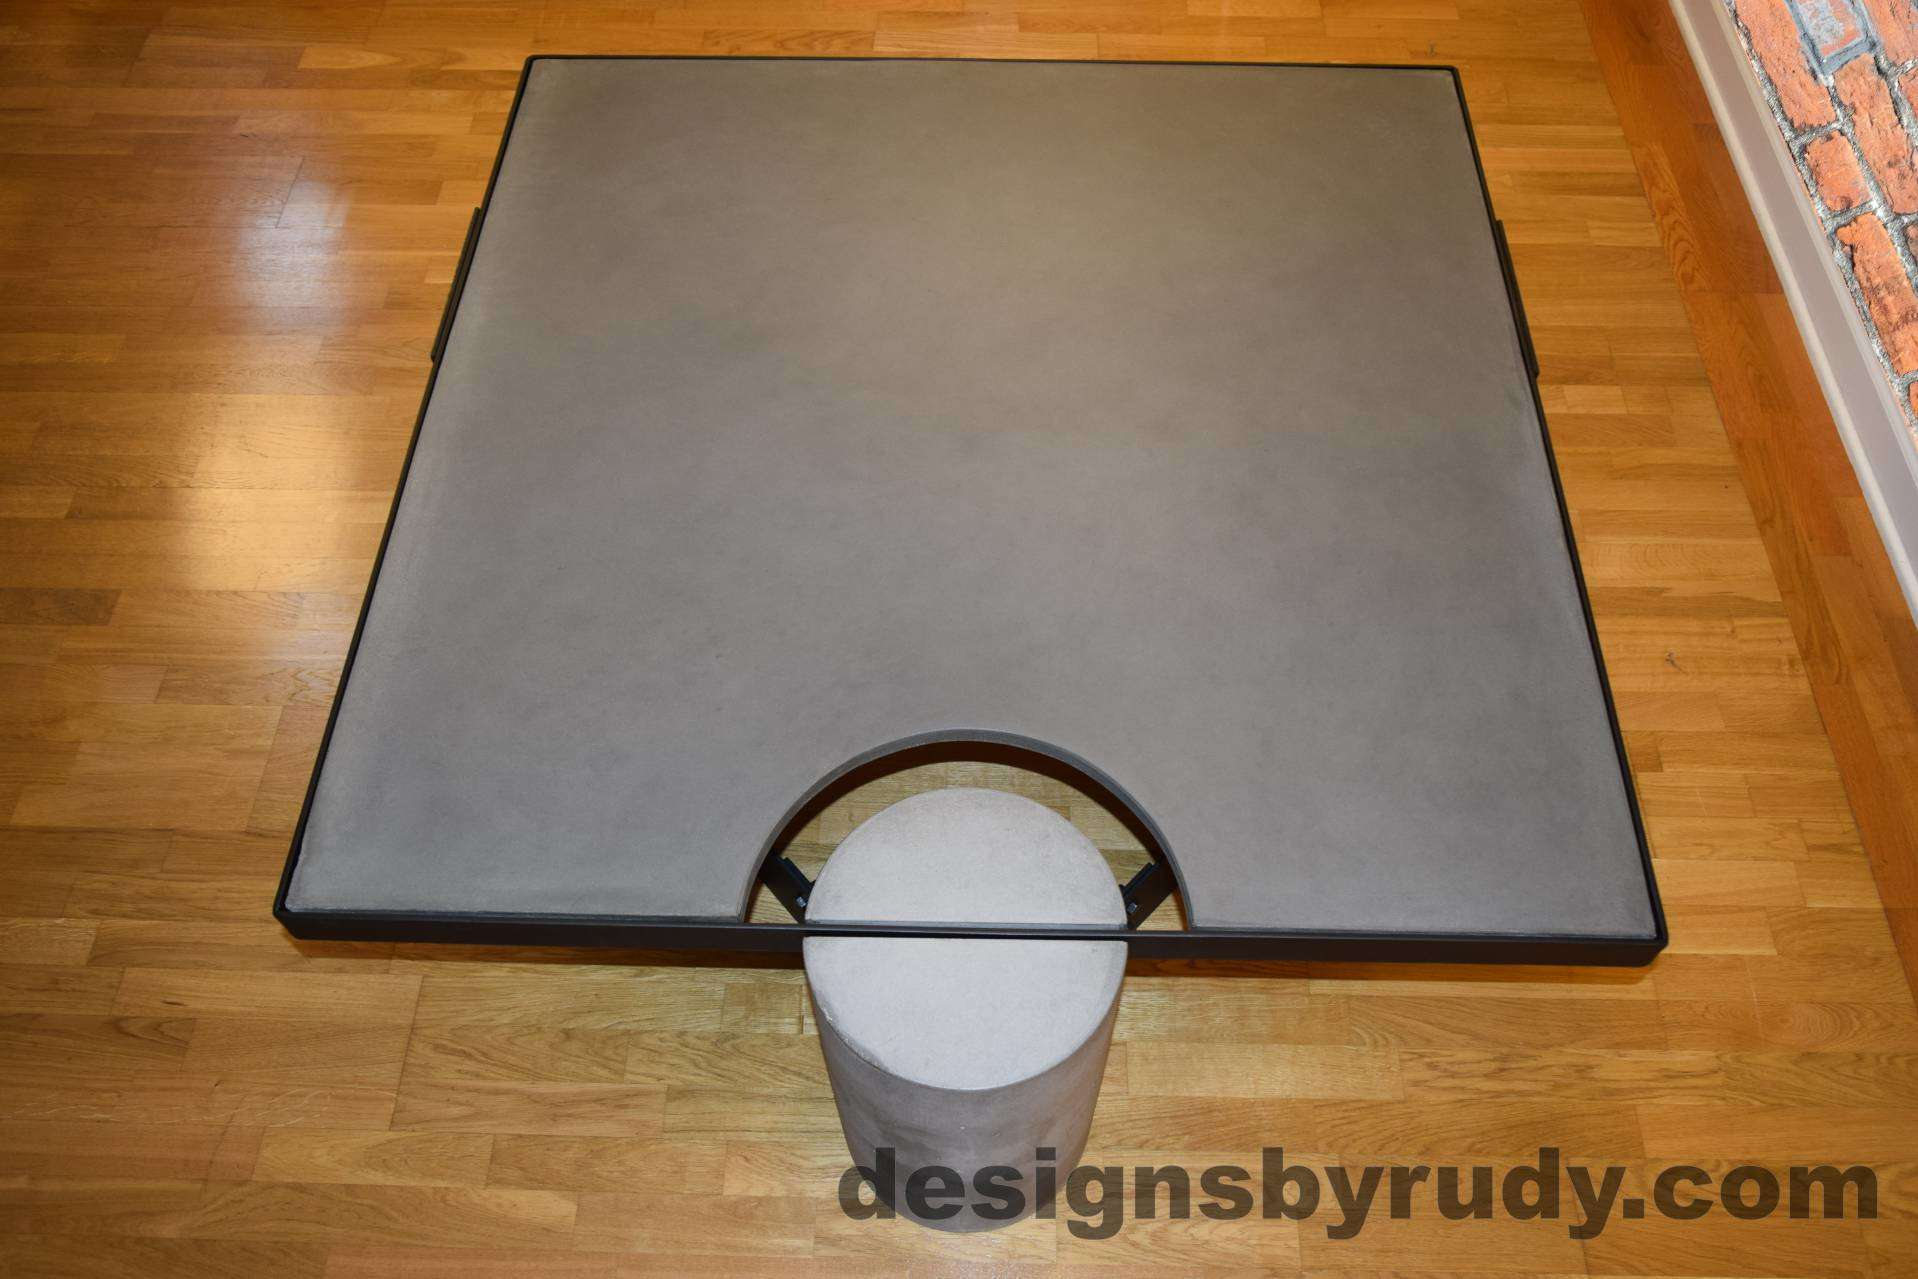 DR30 Gray Concrete Coffee Table with Black Powder Coated